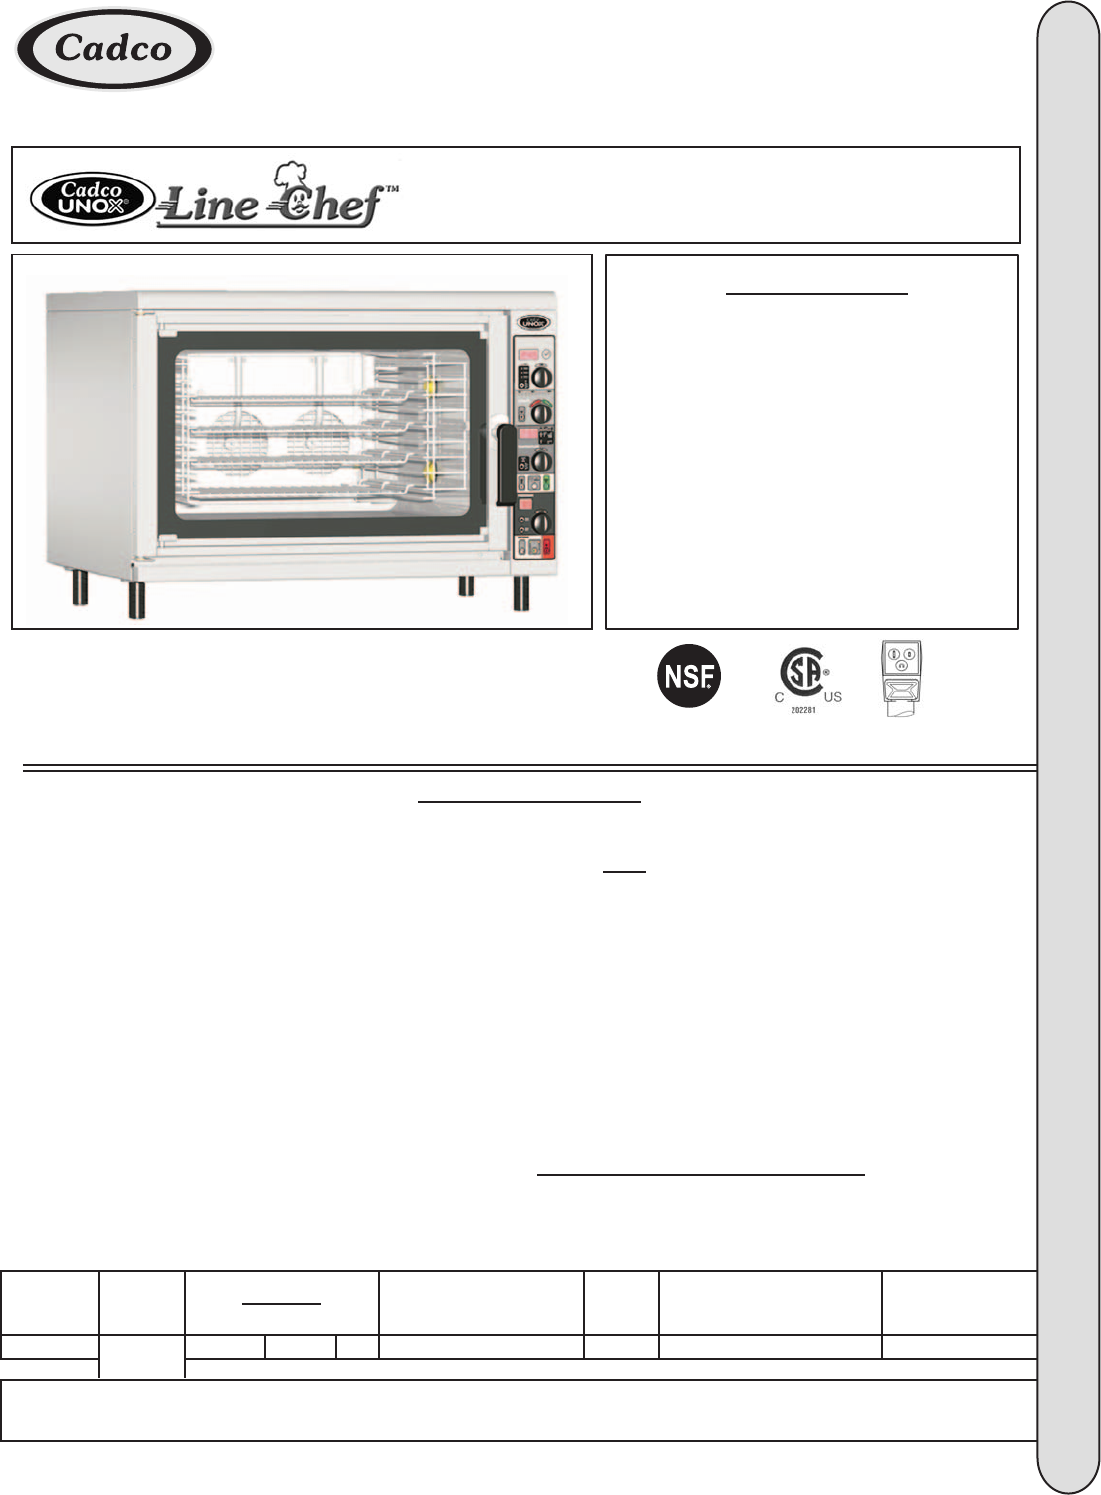 Cadco CAPO-403 Convection Oven User Manual